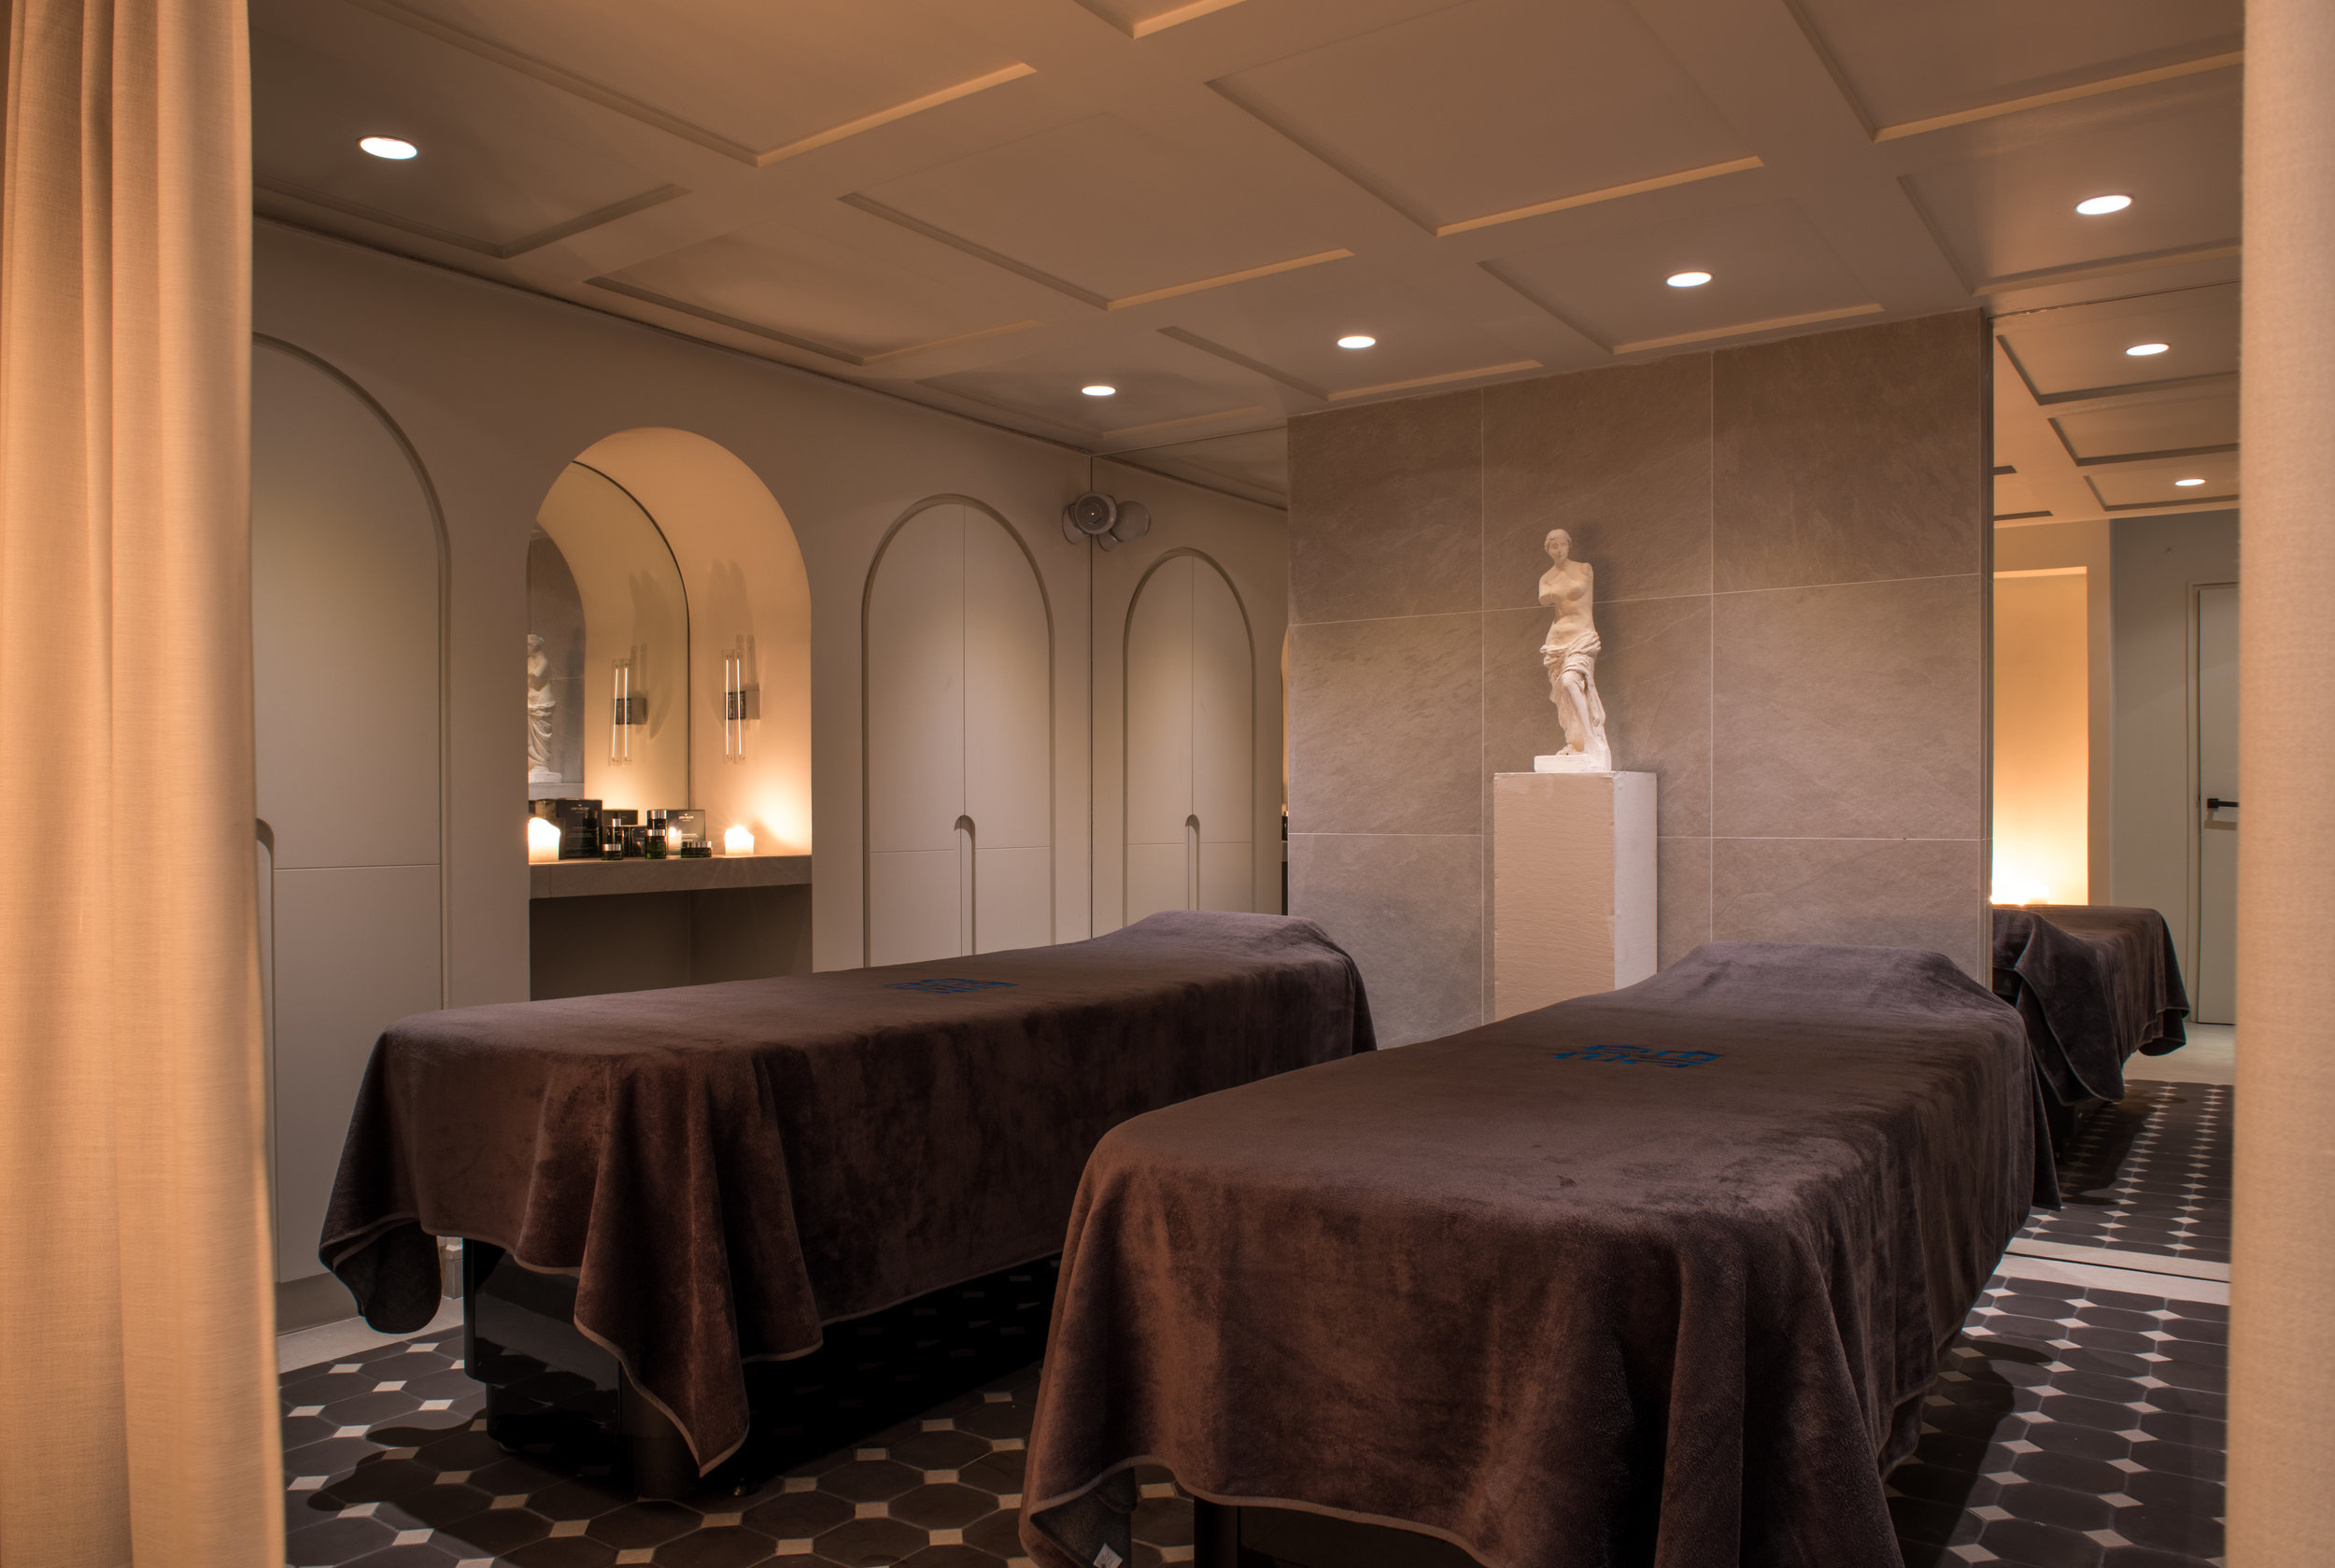 40 - Treatment room Spa.jpg